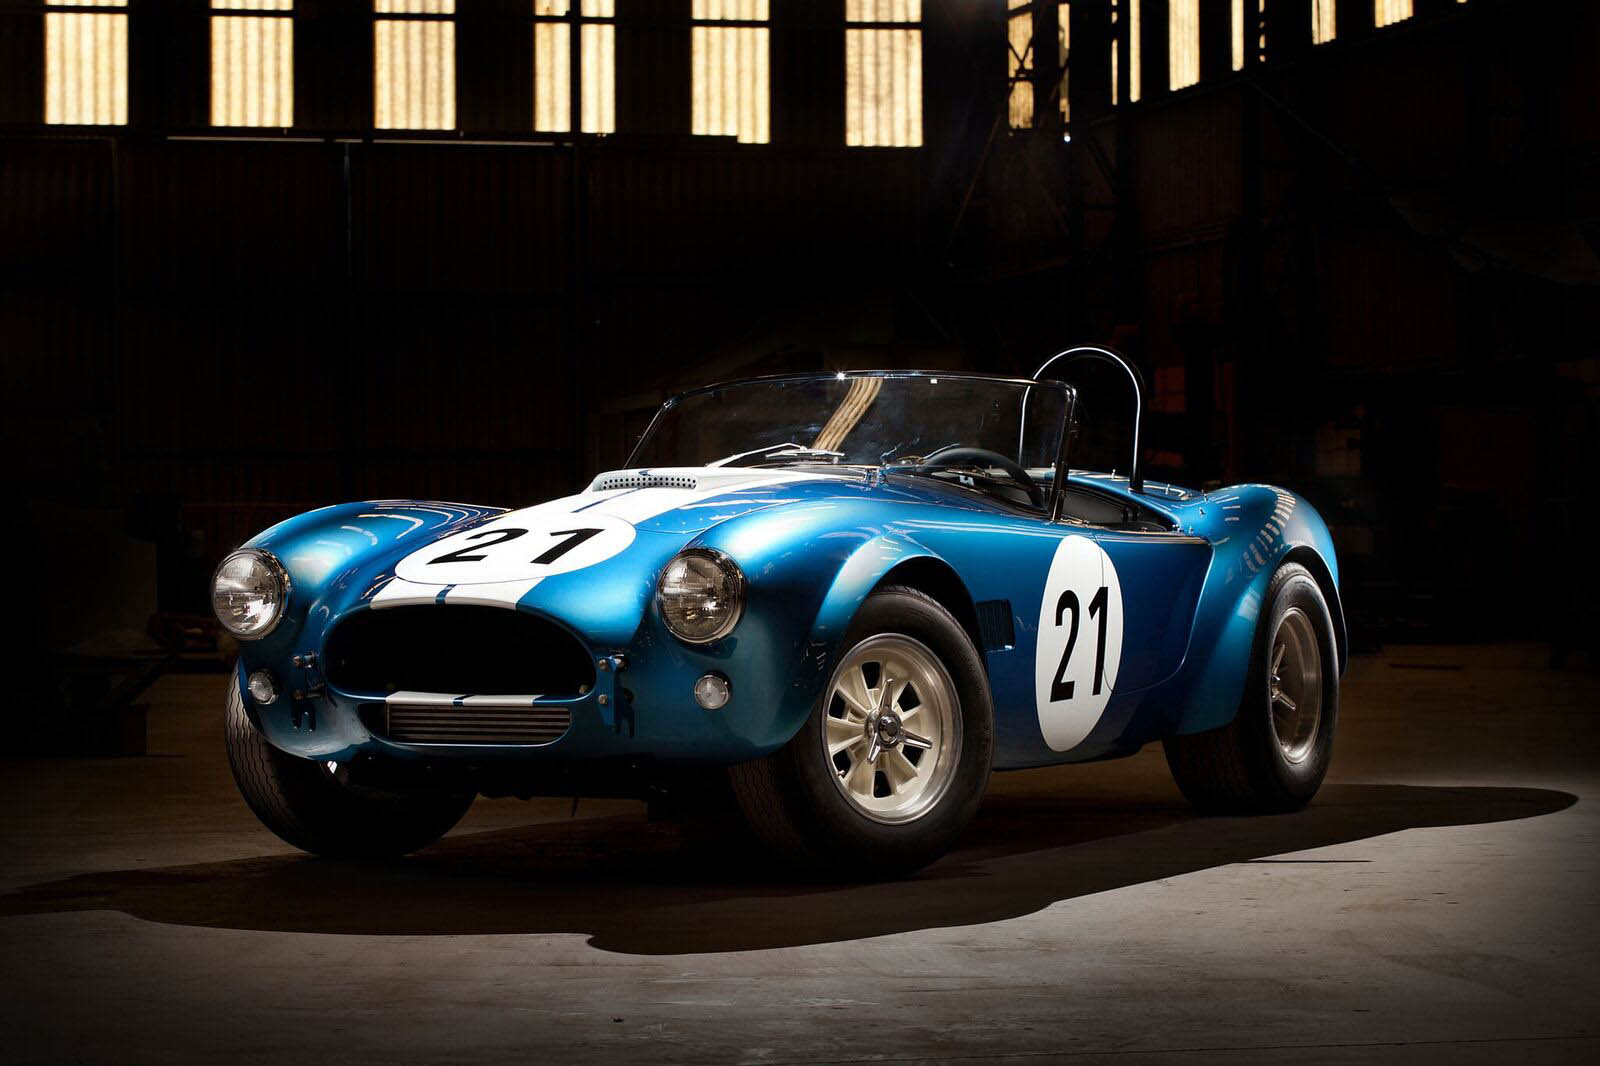 shelby-cobra-bondurant-edition-01